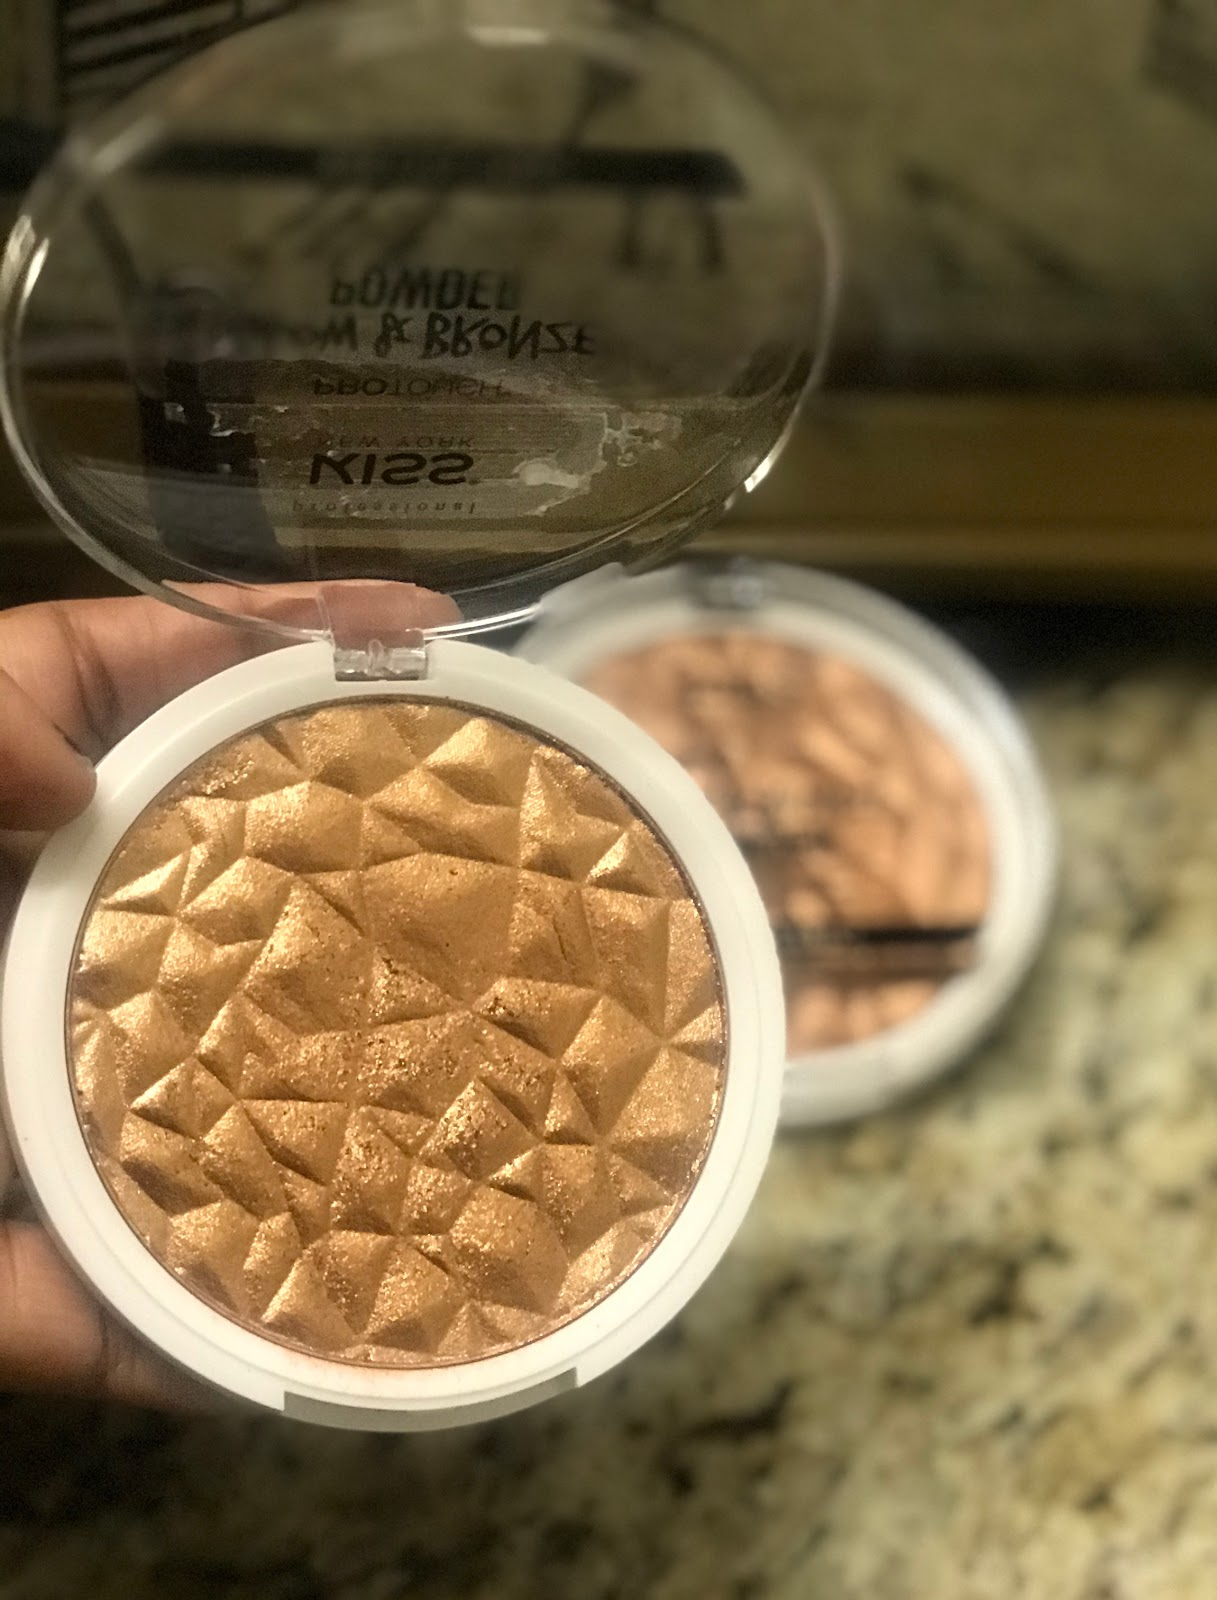 Kiss Glow Bronzer found at the beauty supply store